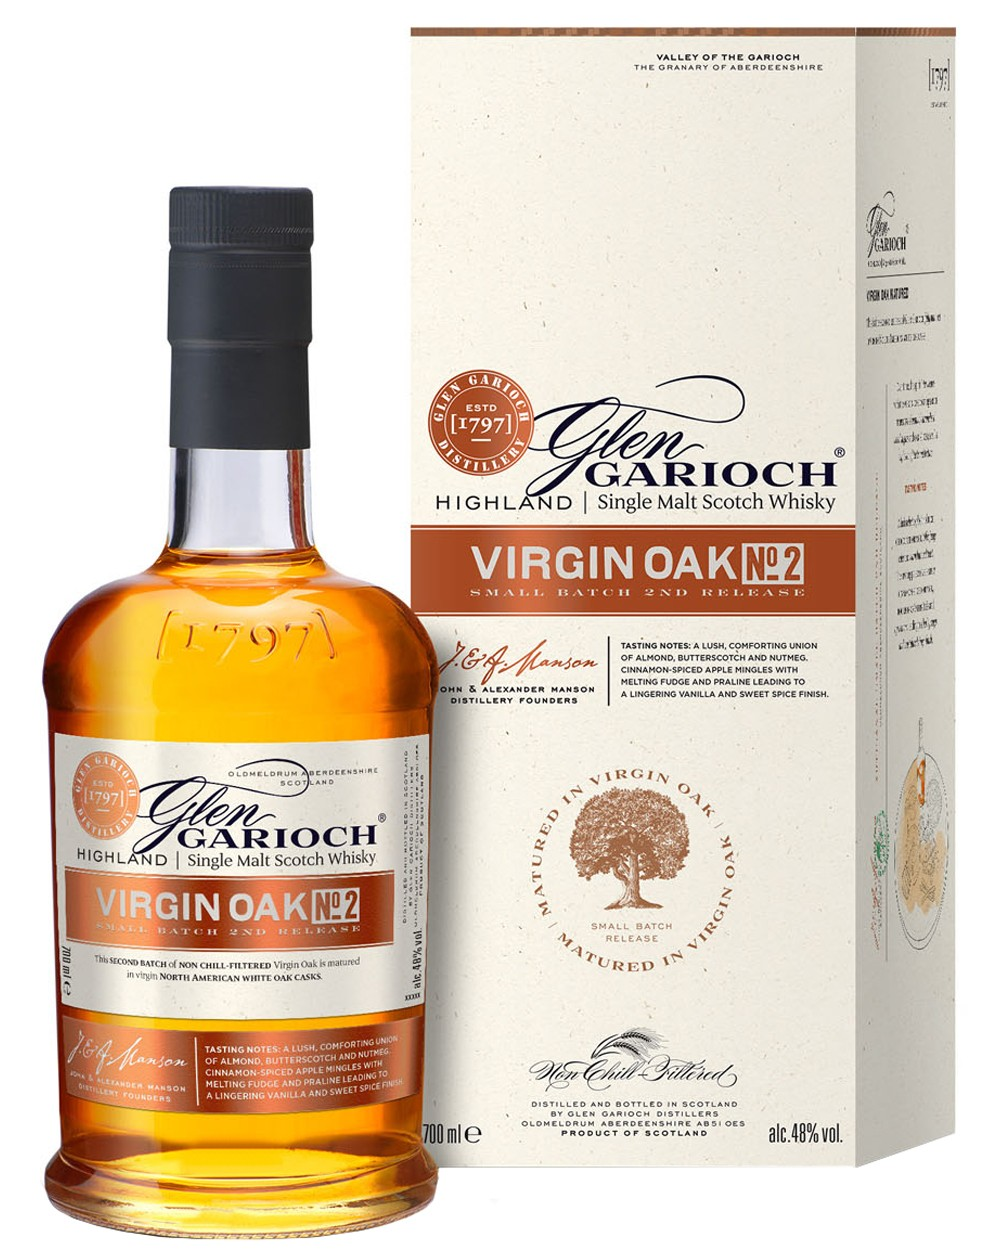 Glen Garioch Virgin Oak No. 2 - Limited Edition